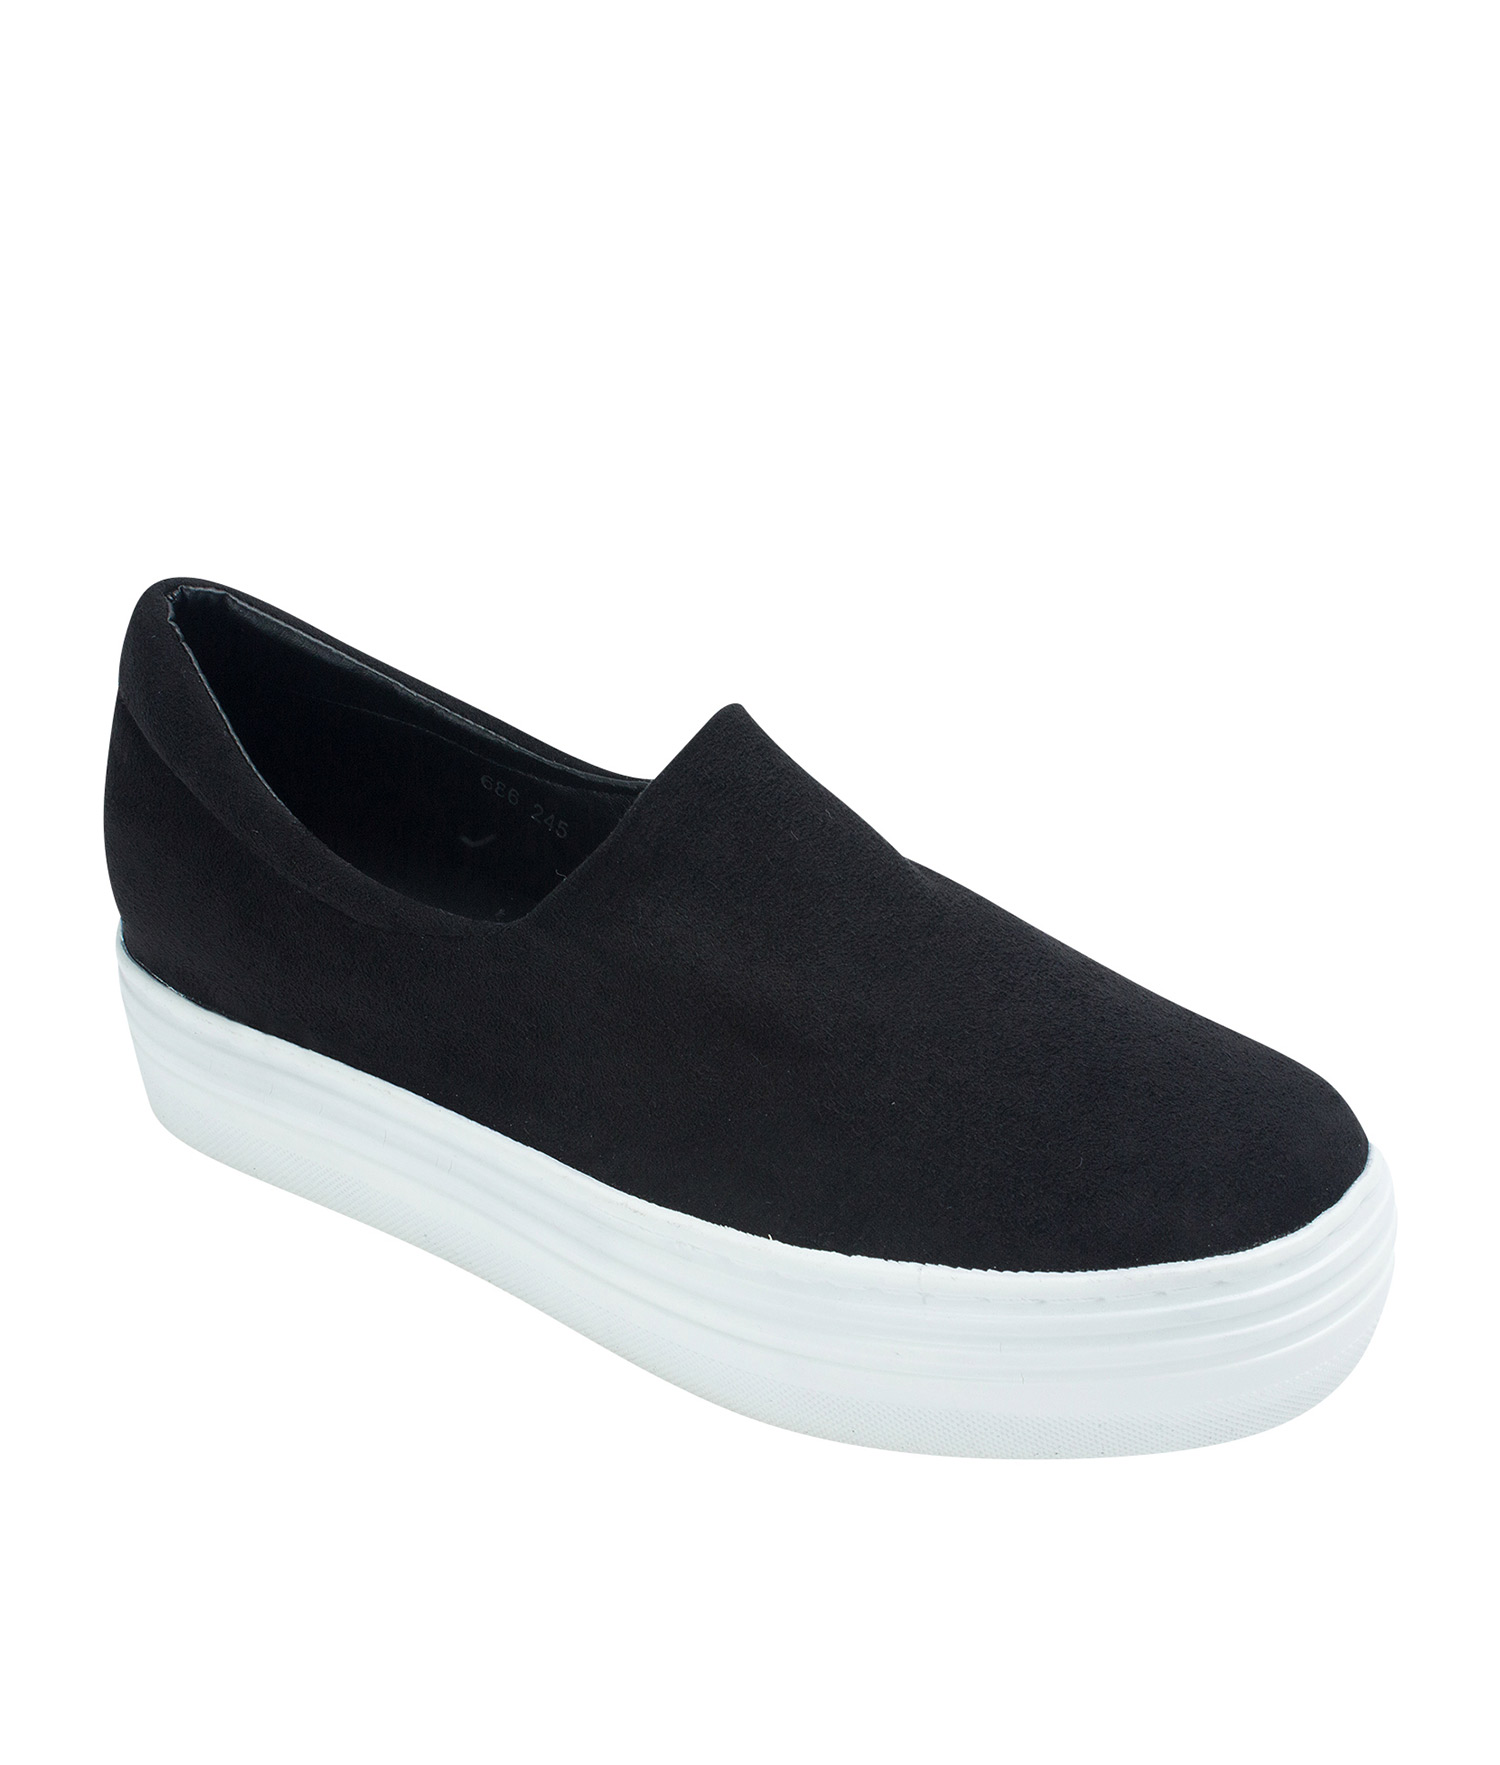 AnnaKastle Womens Faux Suede Stretch Slip-On Platform Sneakers Black